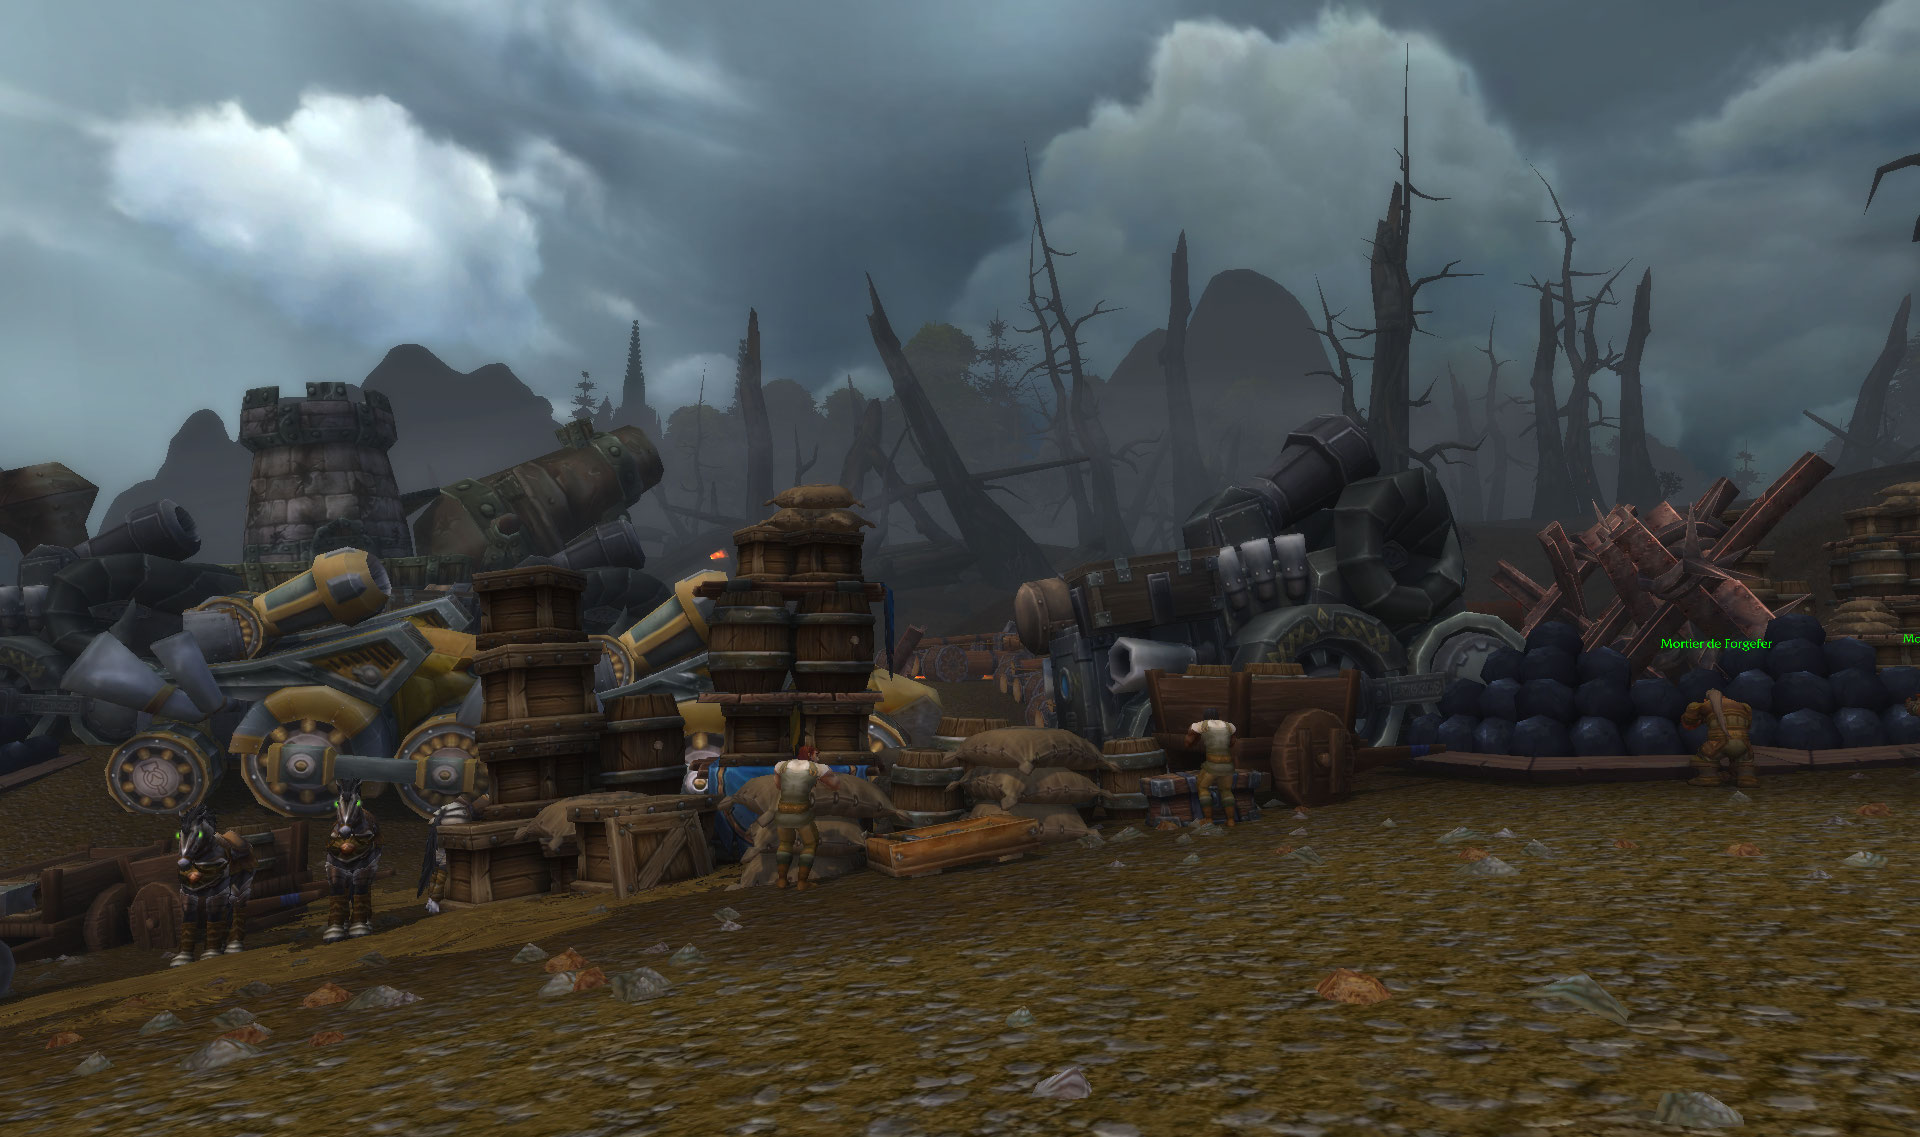 Bataille de Lordaeron sur World of Warcraft: Battle for Azeroth.